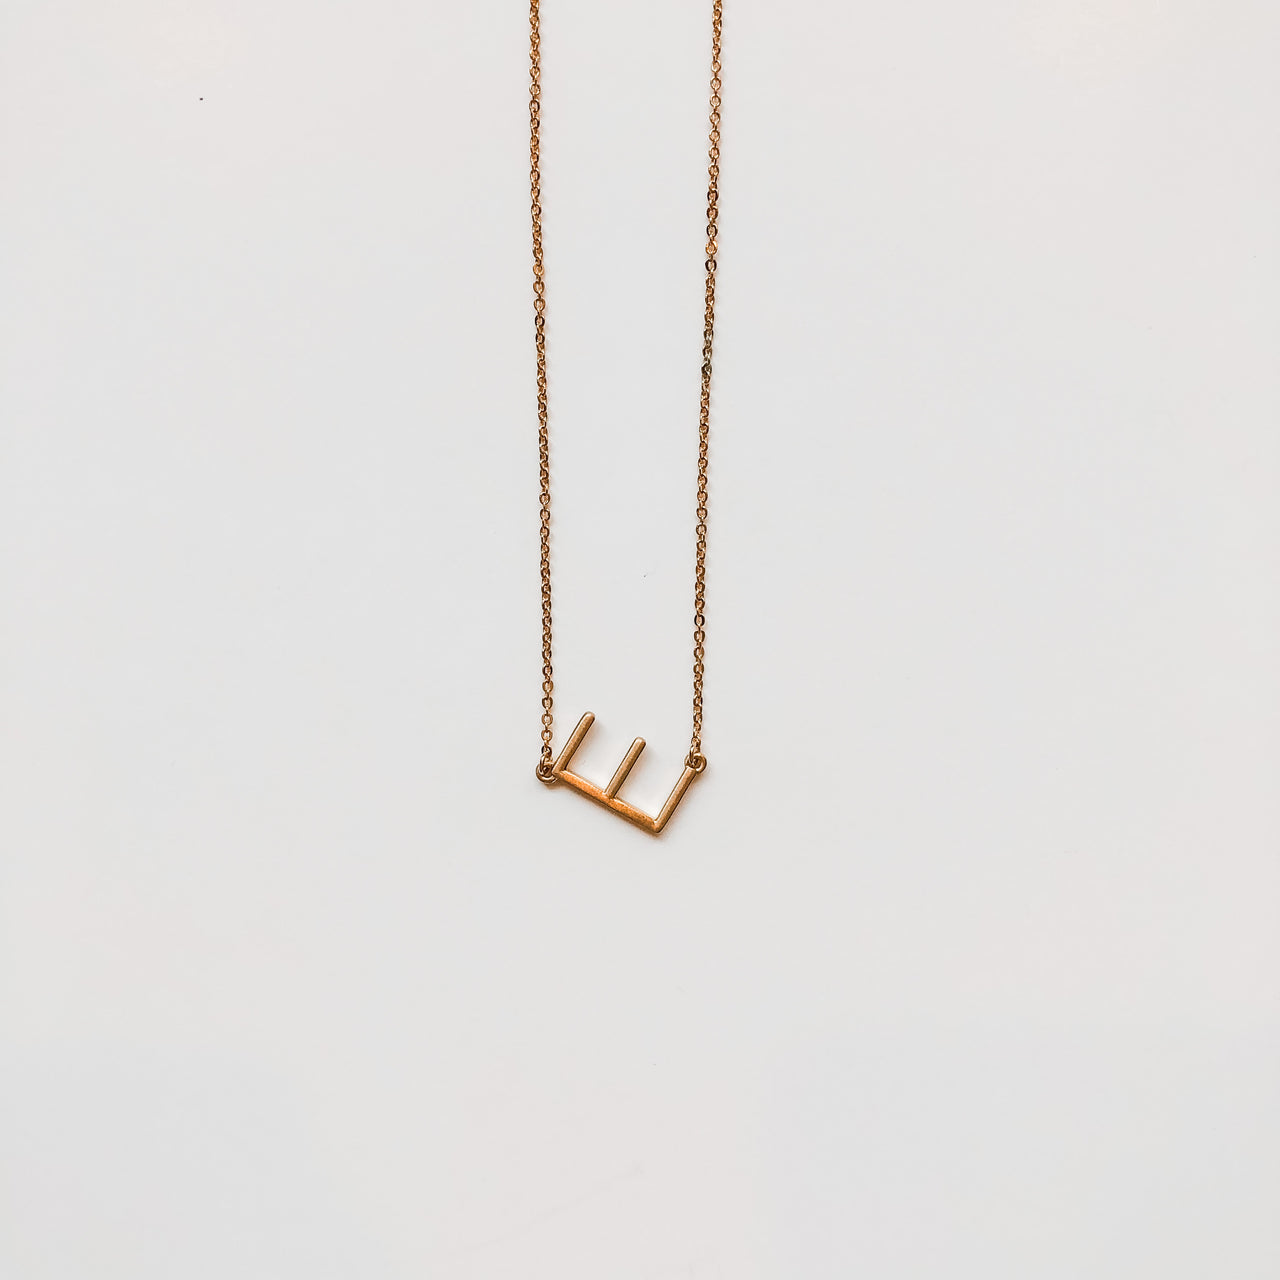 Medium Gold Letter Necklace